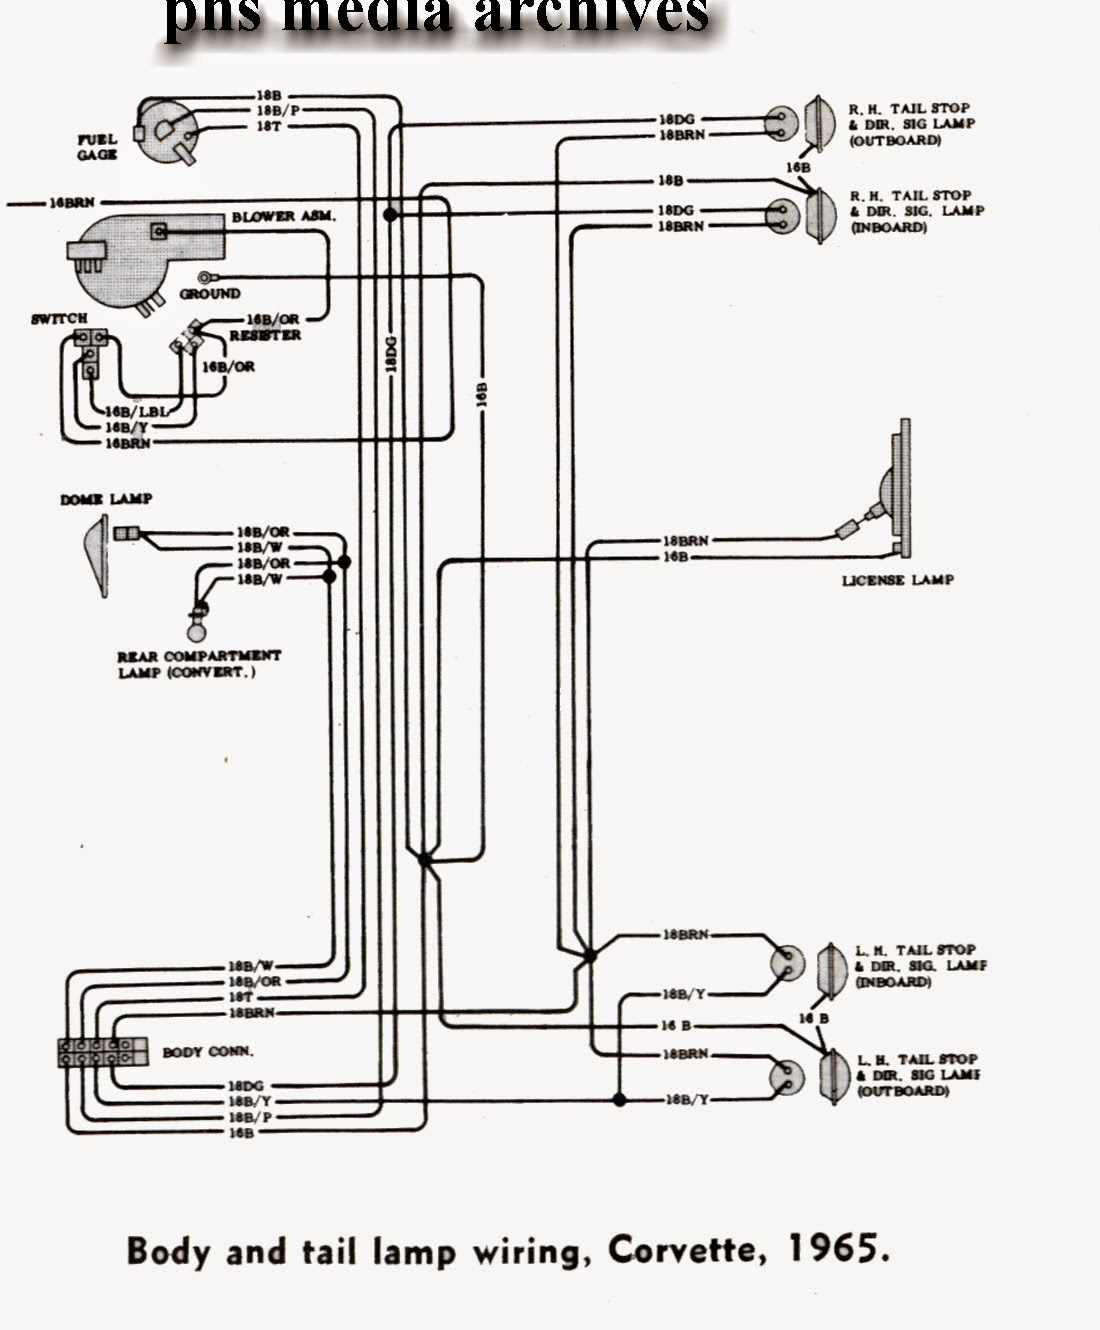 wilson 1970 corvette vacuum diagram  u2022 wiring diagram for free